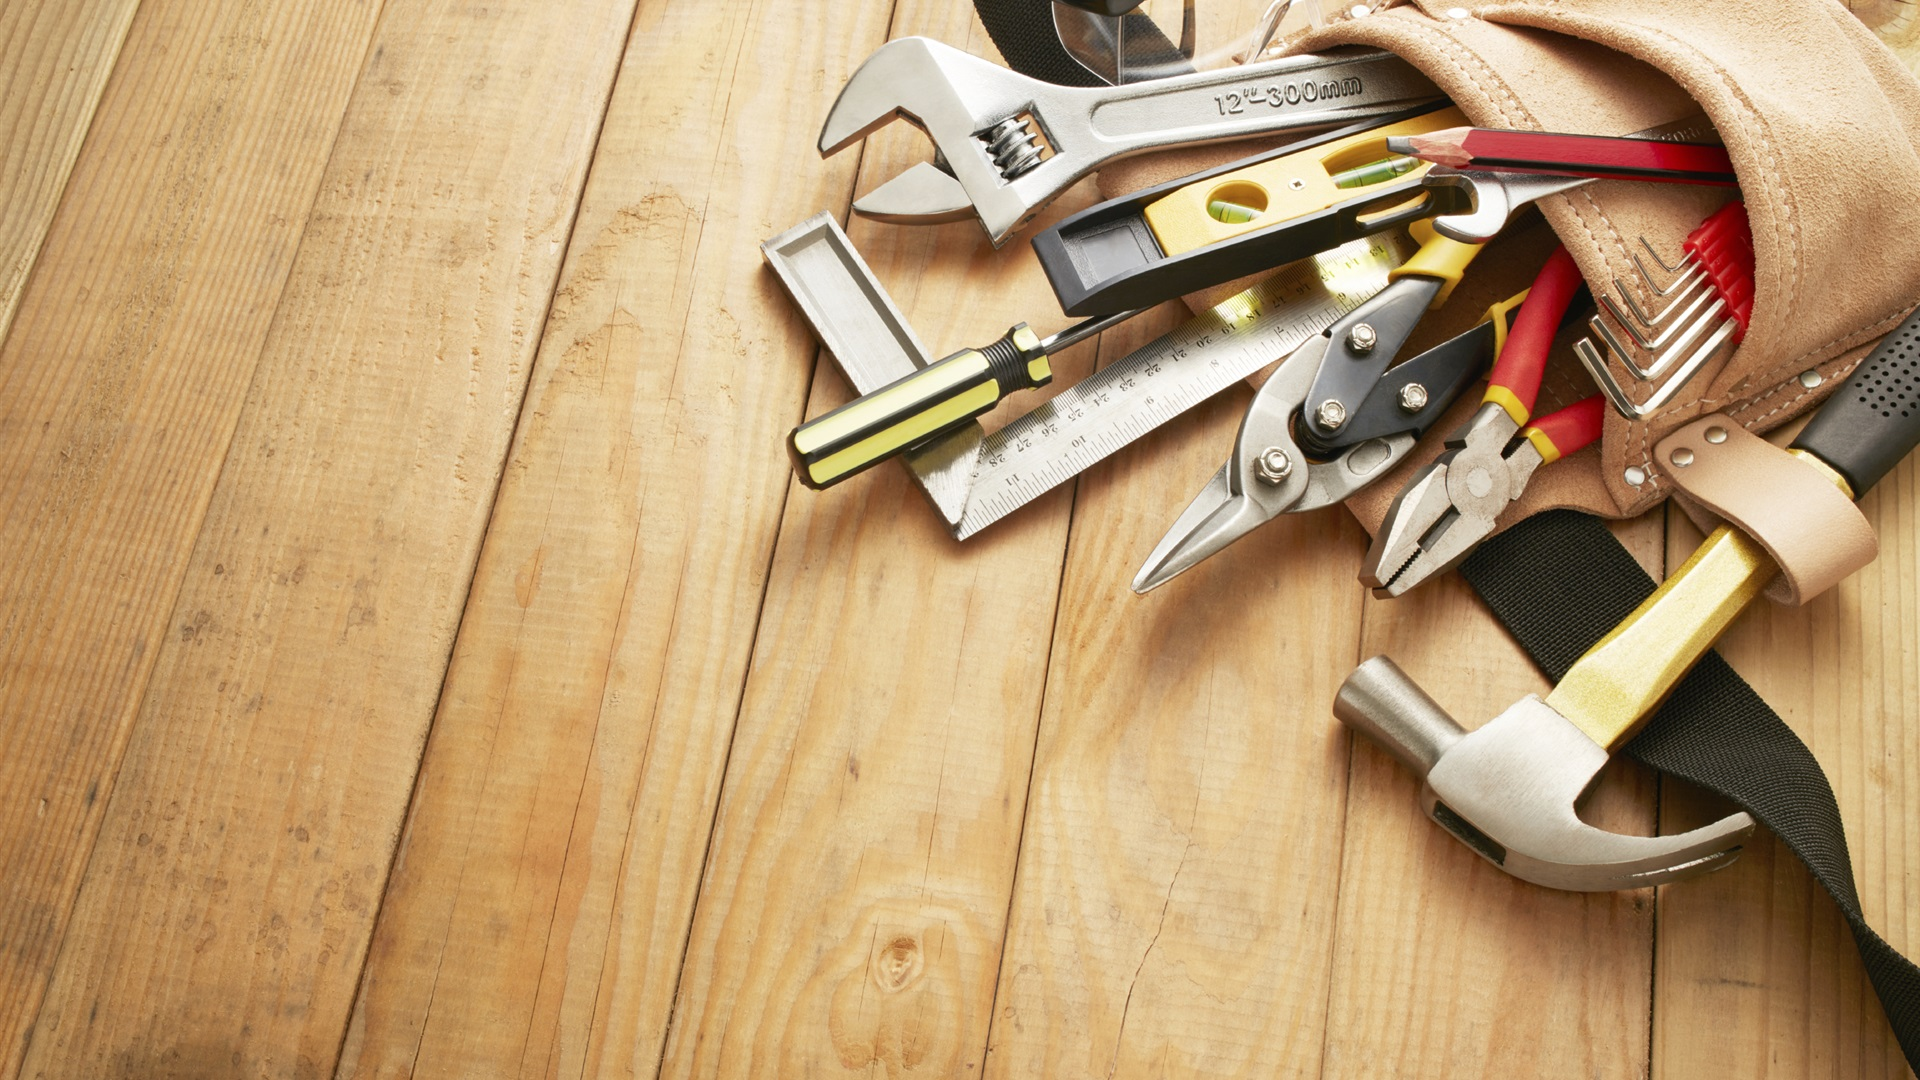 Home-common-tools_1920x1080